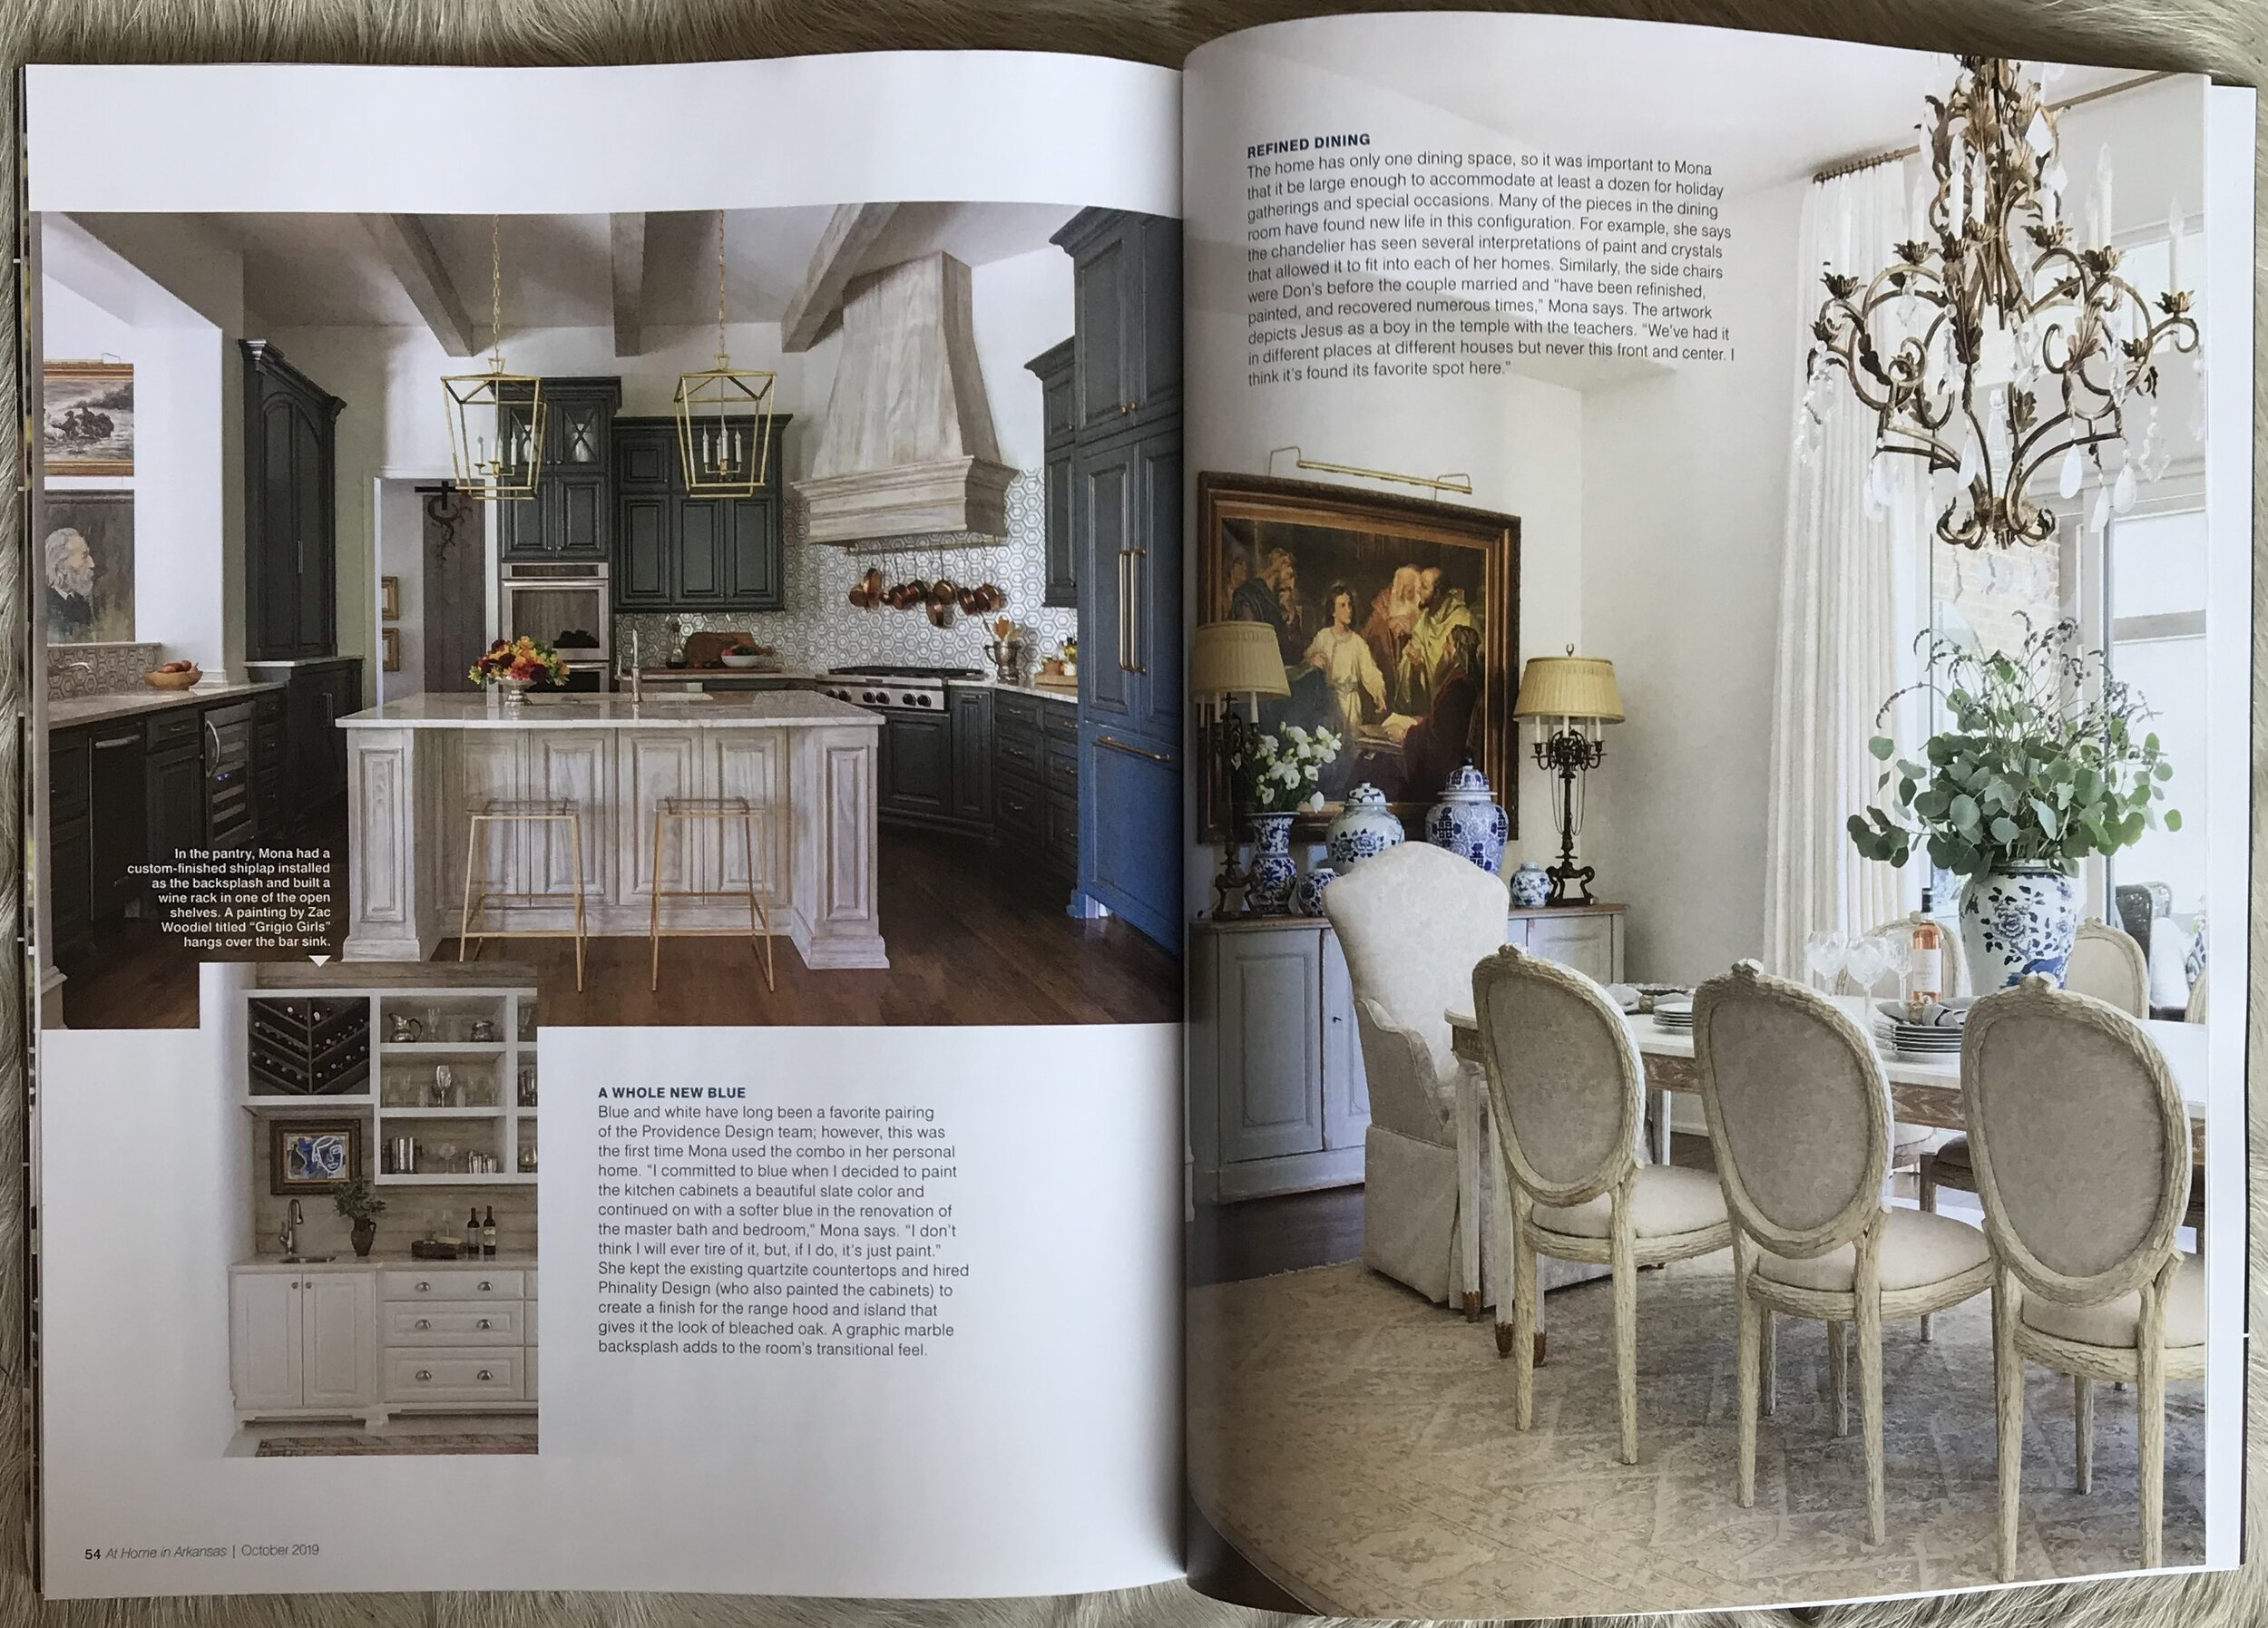 At Home in Arkansas - Providence Design Feature